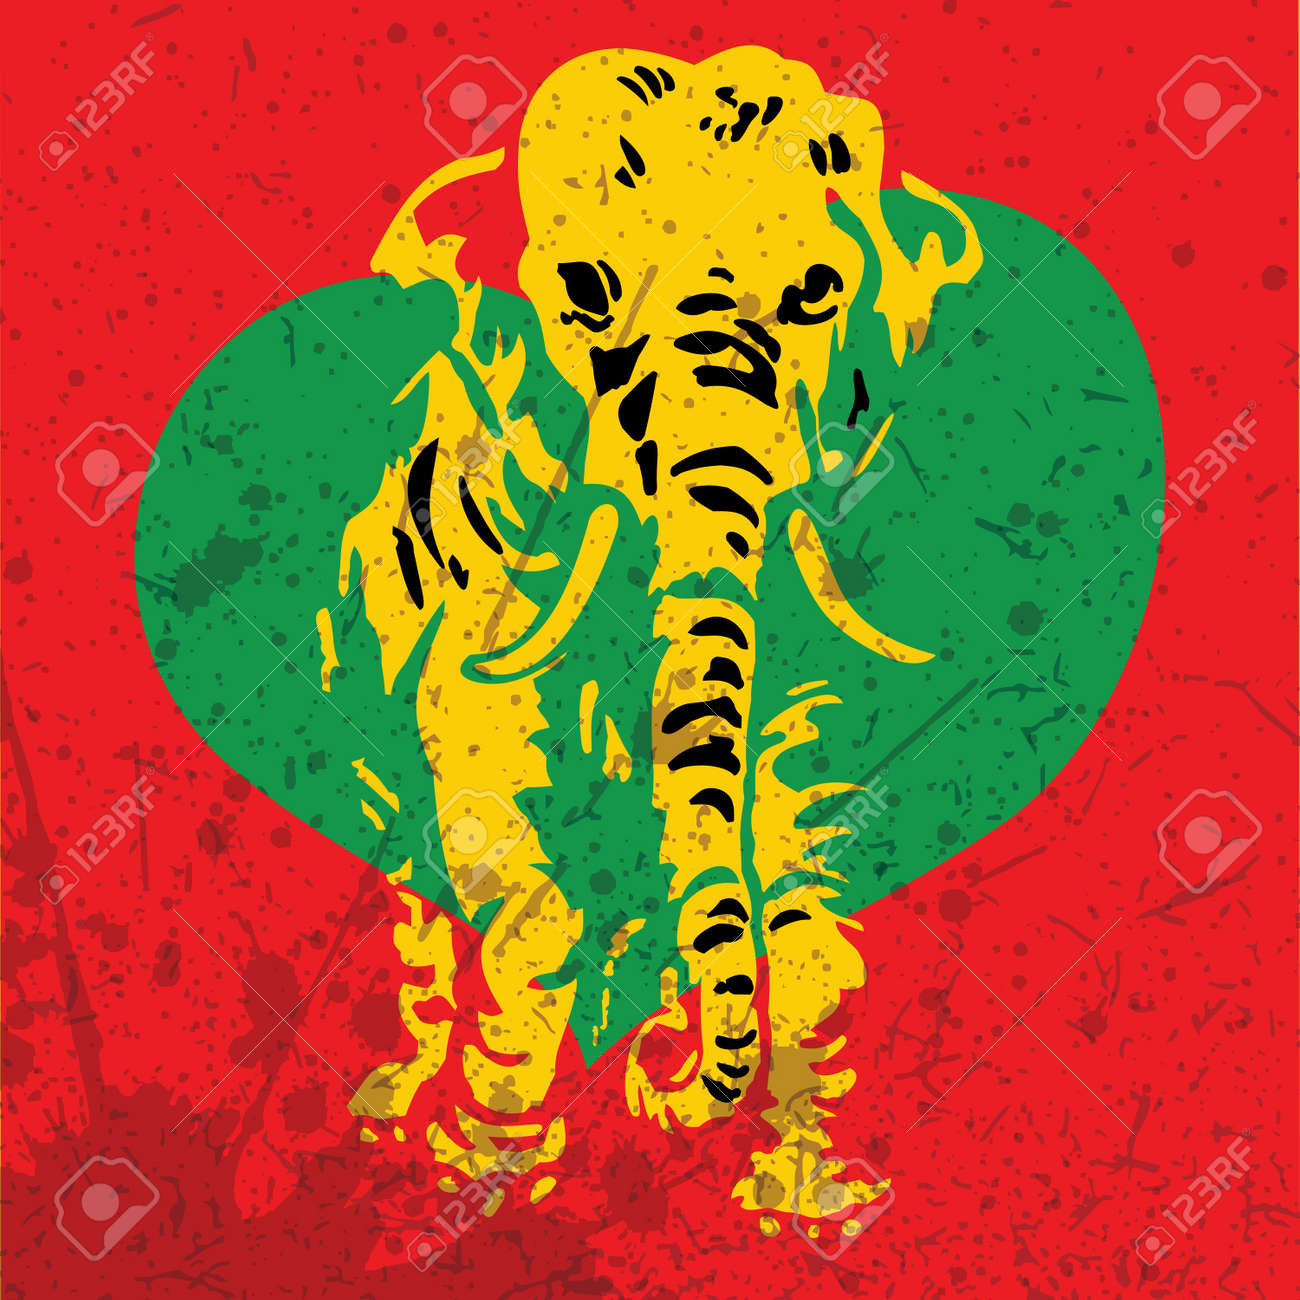 Retro elephant with heart- grunge background Stock Vector - 16158914